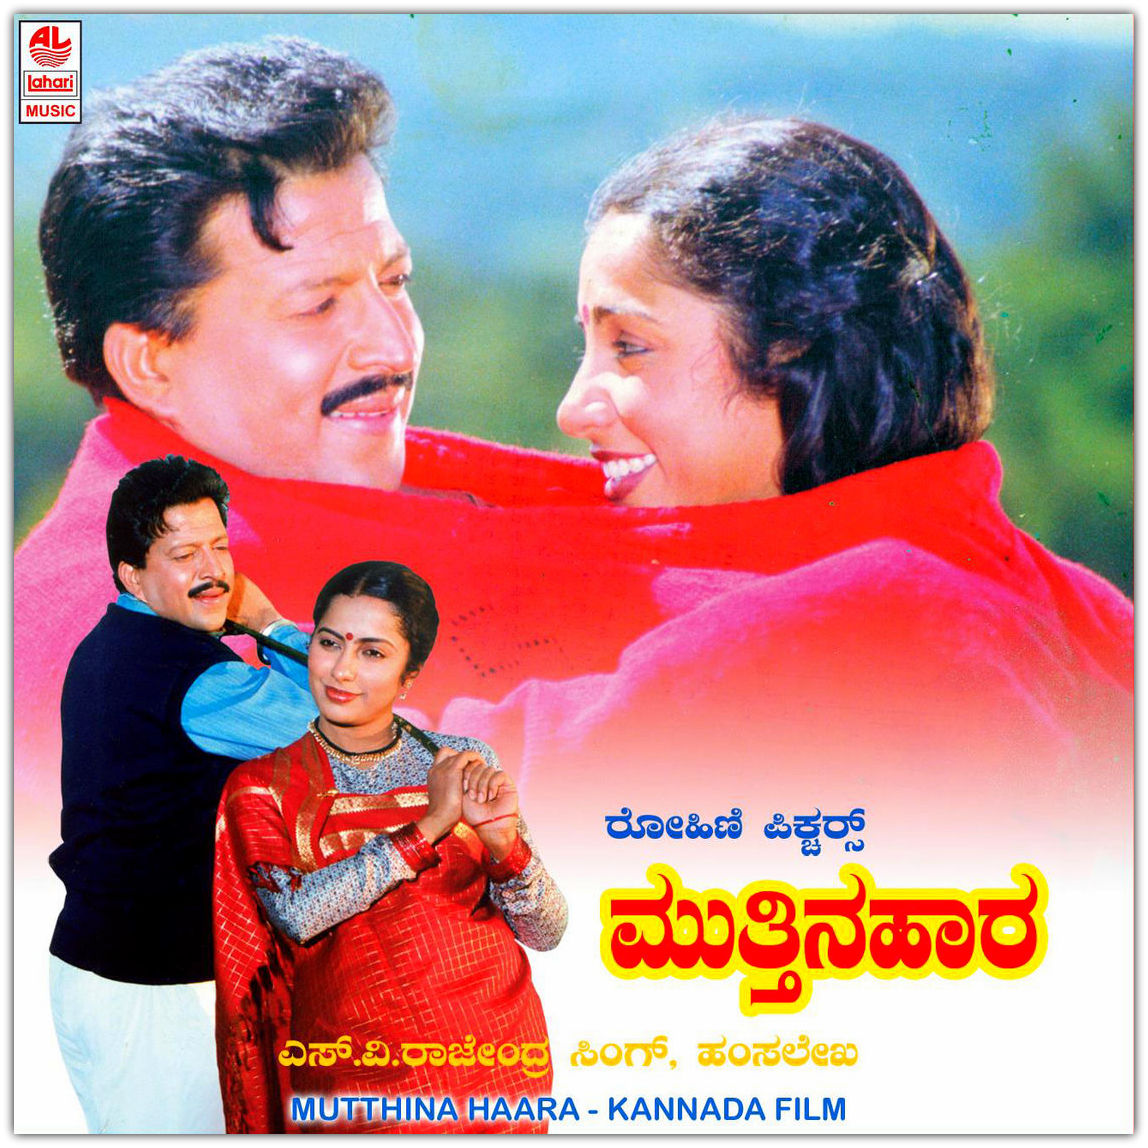 No Need Mp3 Song Djpunjab: Kannada Mp3 Songs: 1989